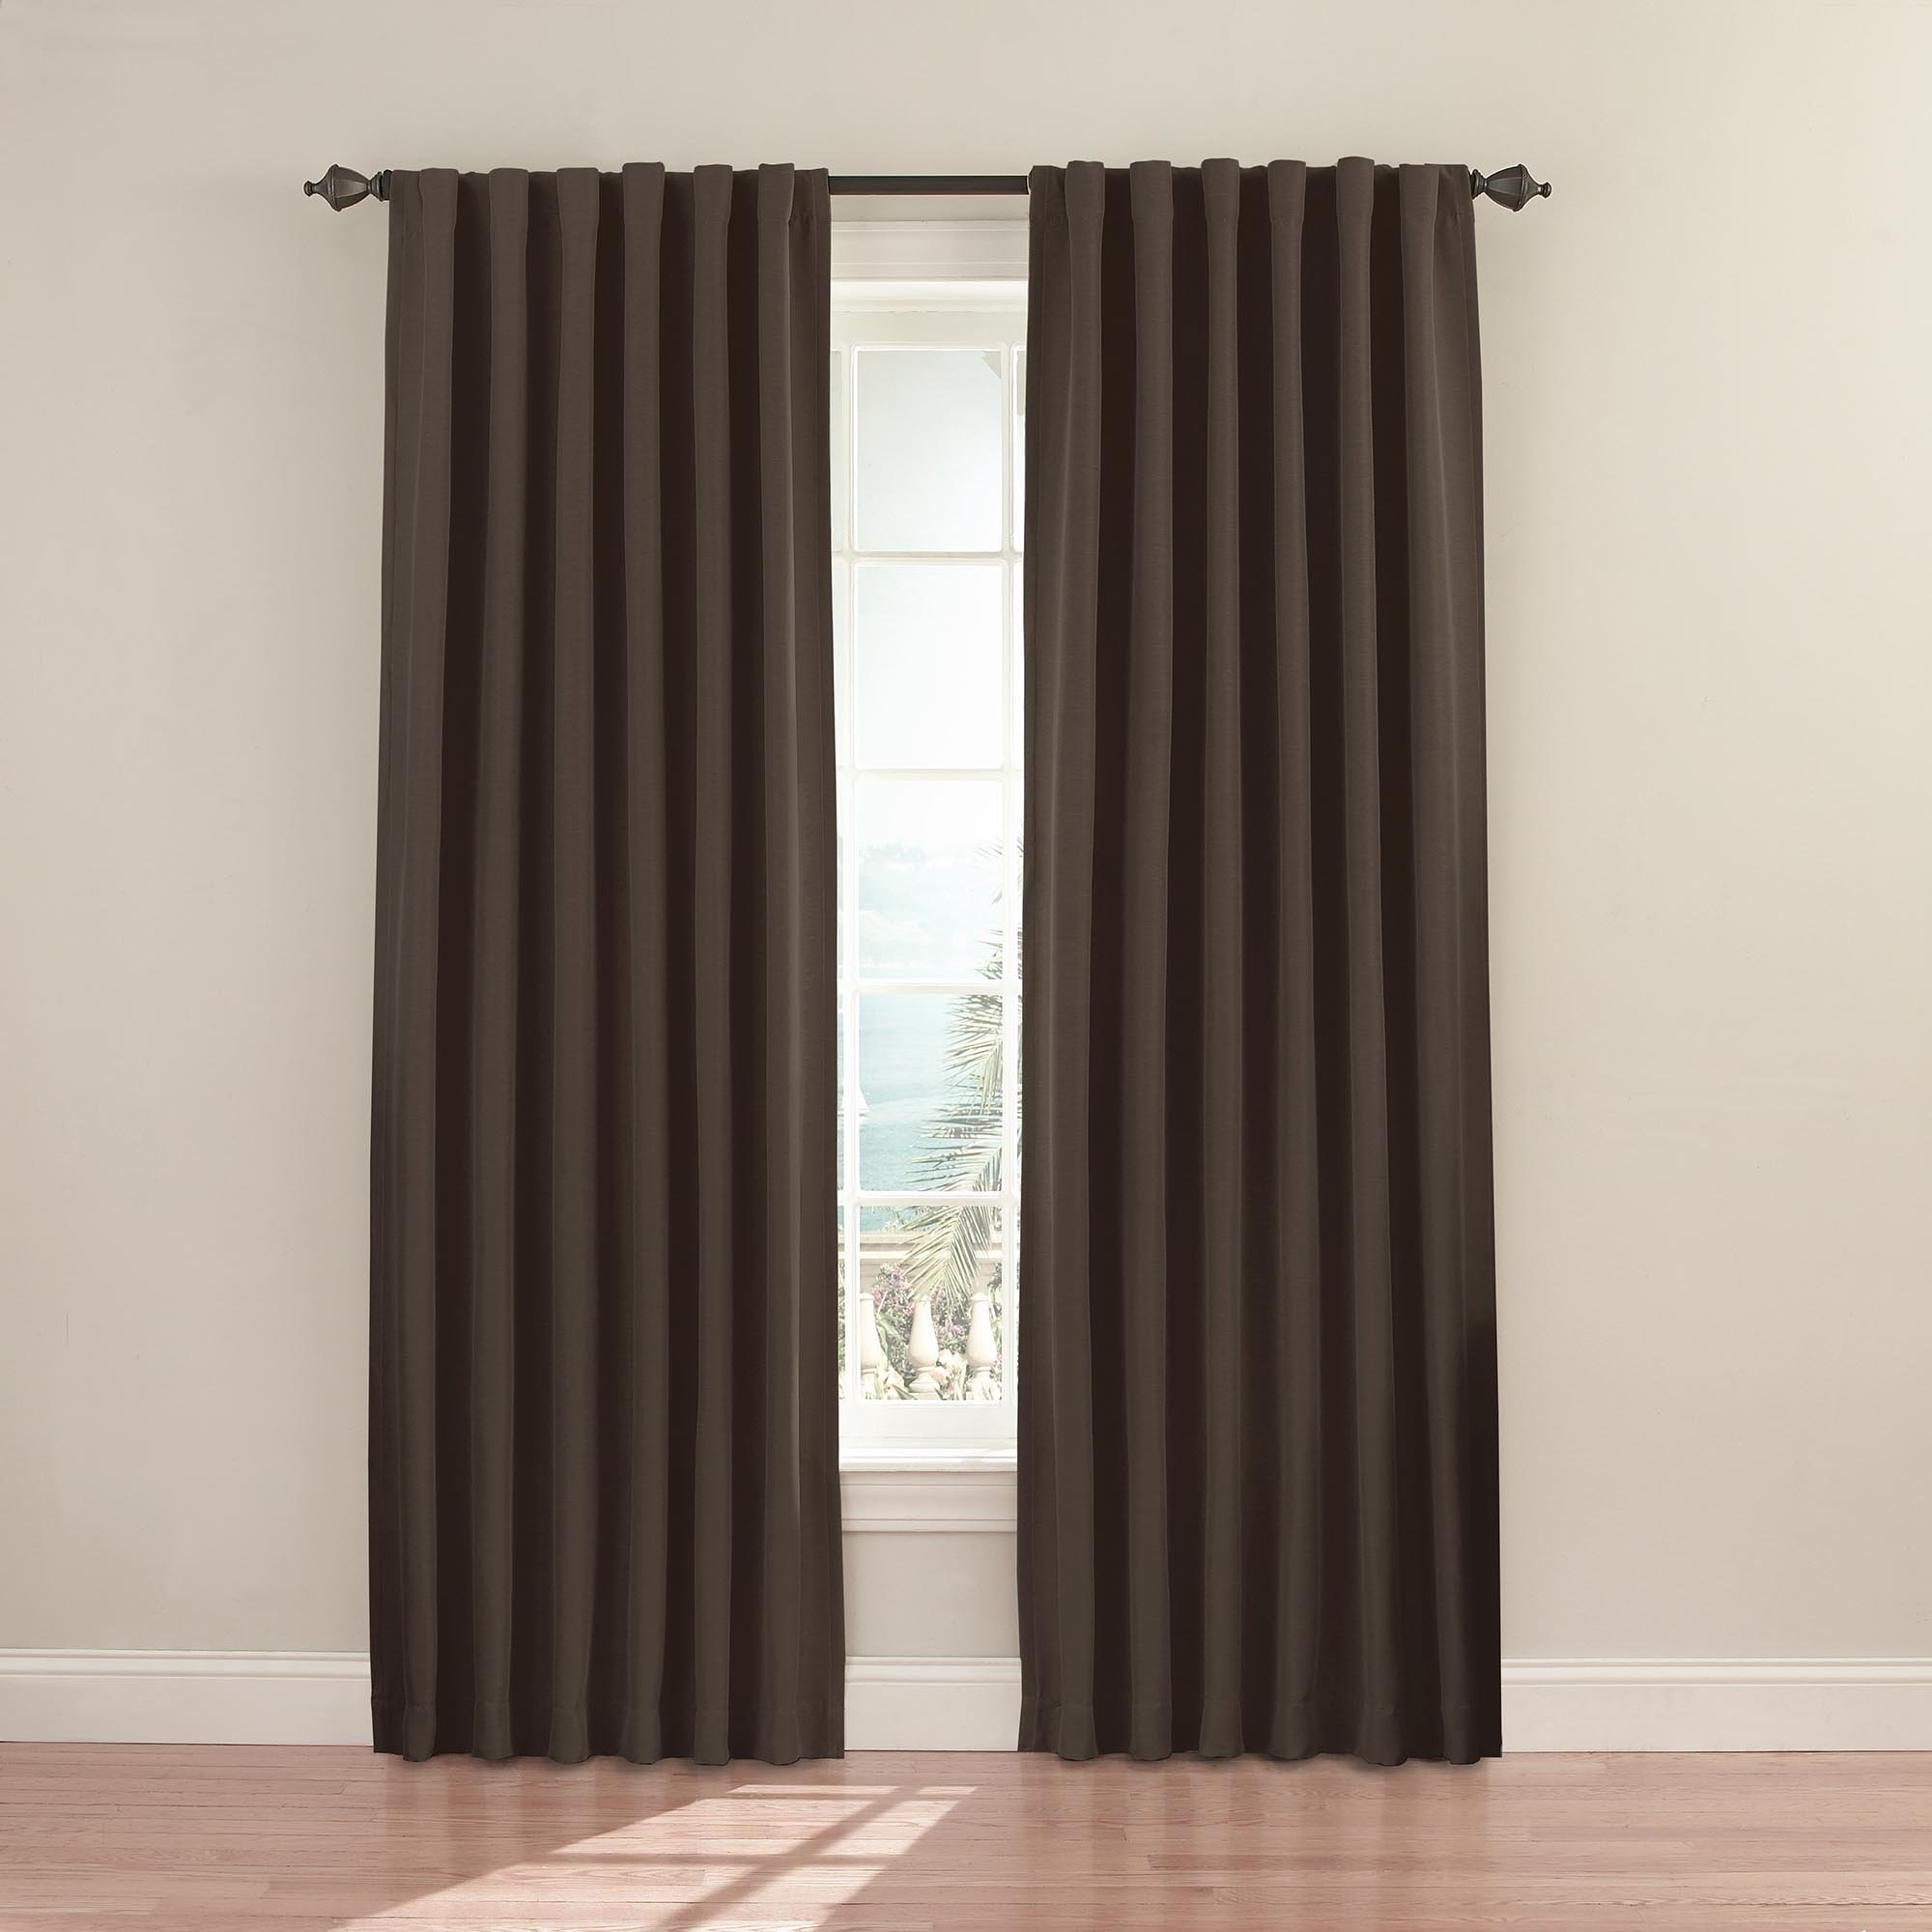 Eclipse 11353052095MSH Fresno 52-inch by 95-inch Blackout Signle Window Curtain Panel, Mushroom